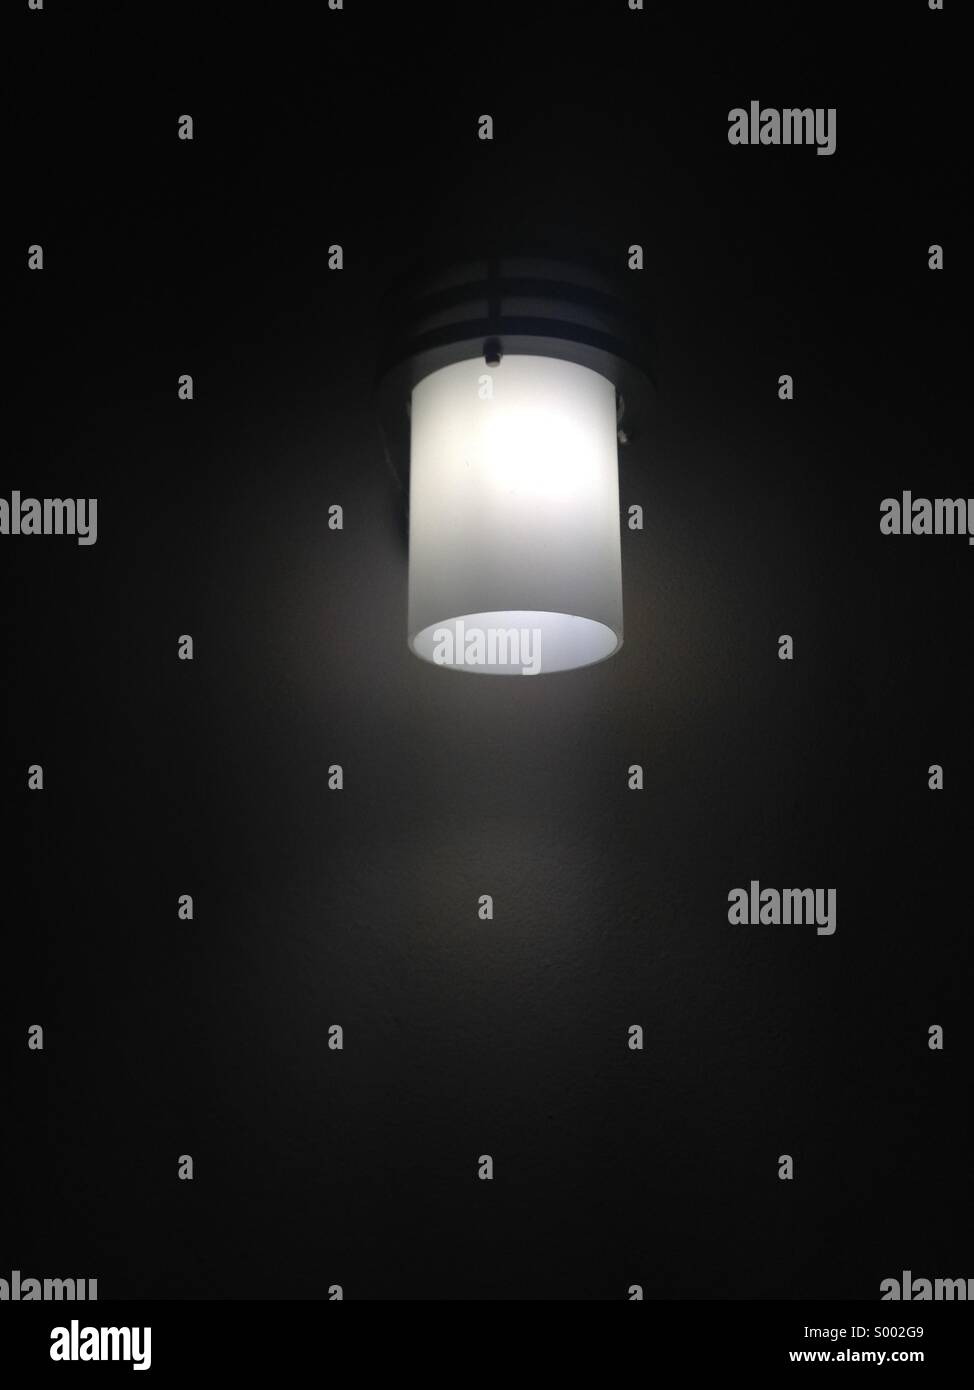 A lamp is powe light. - Stock Image